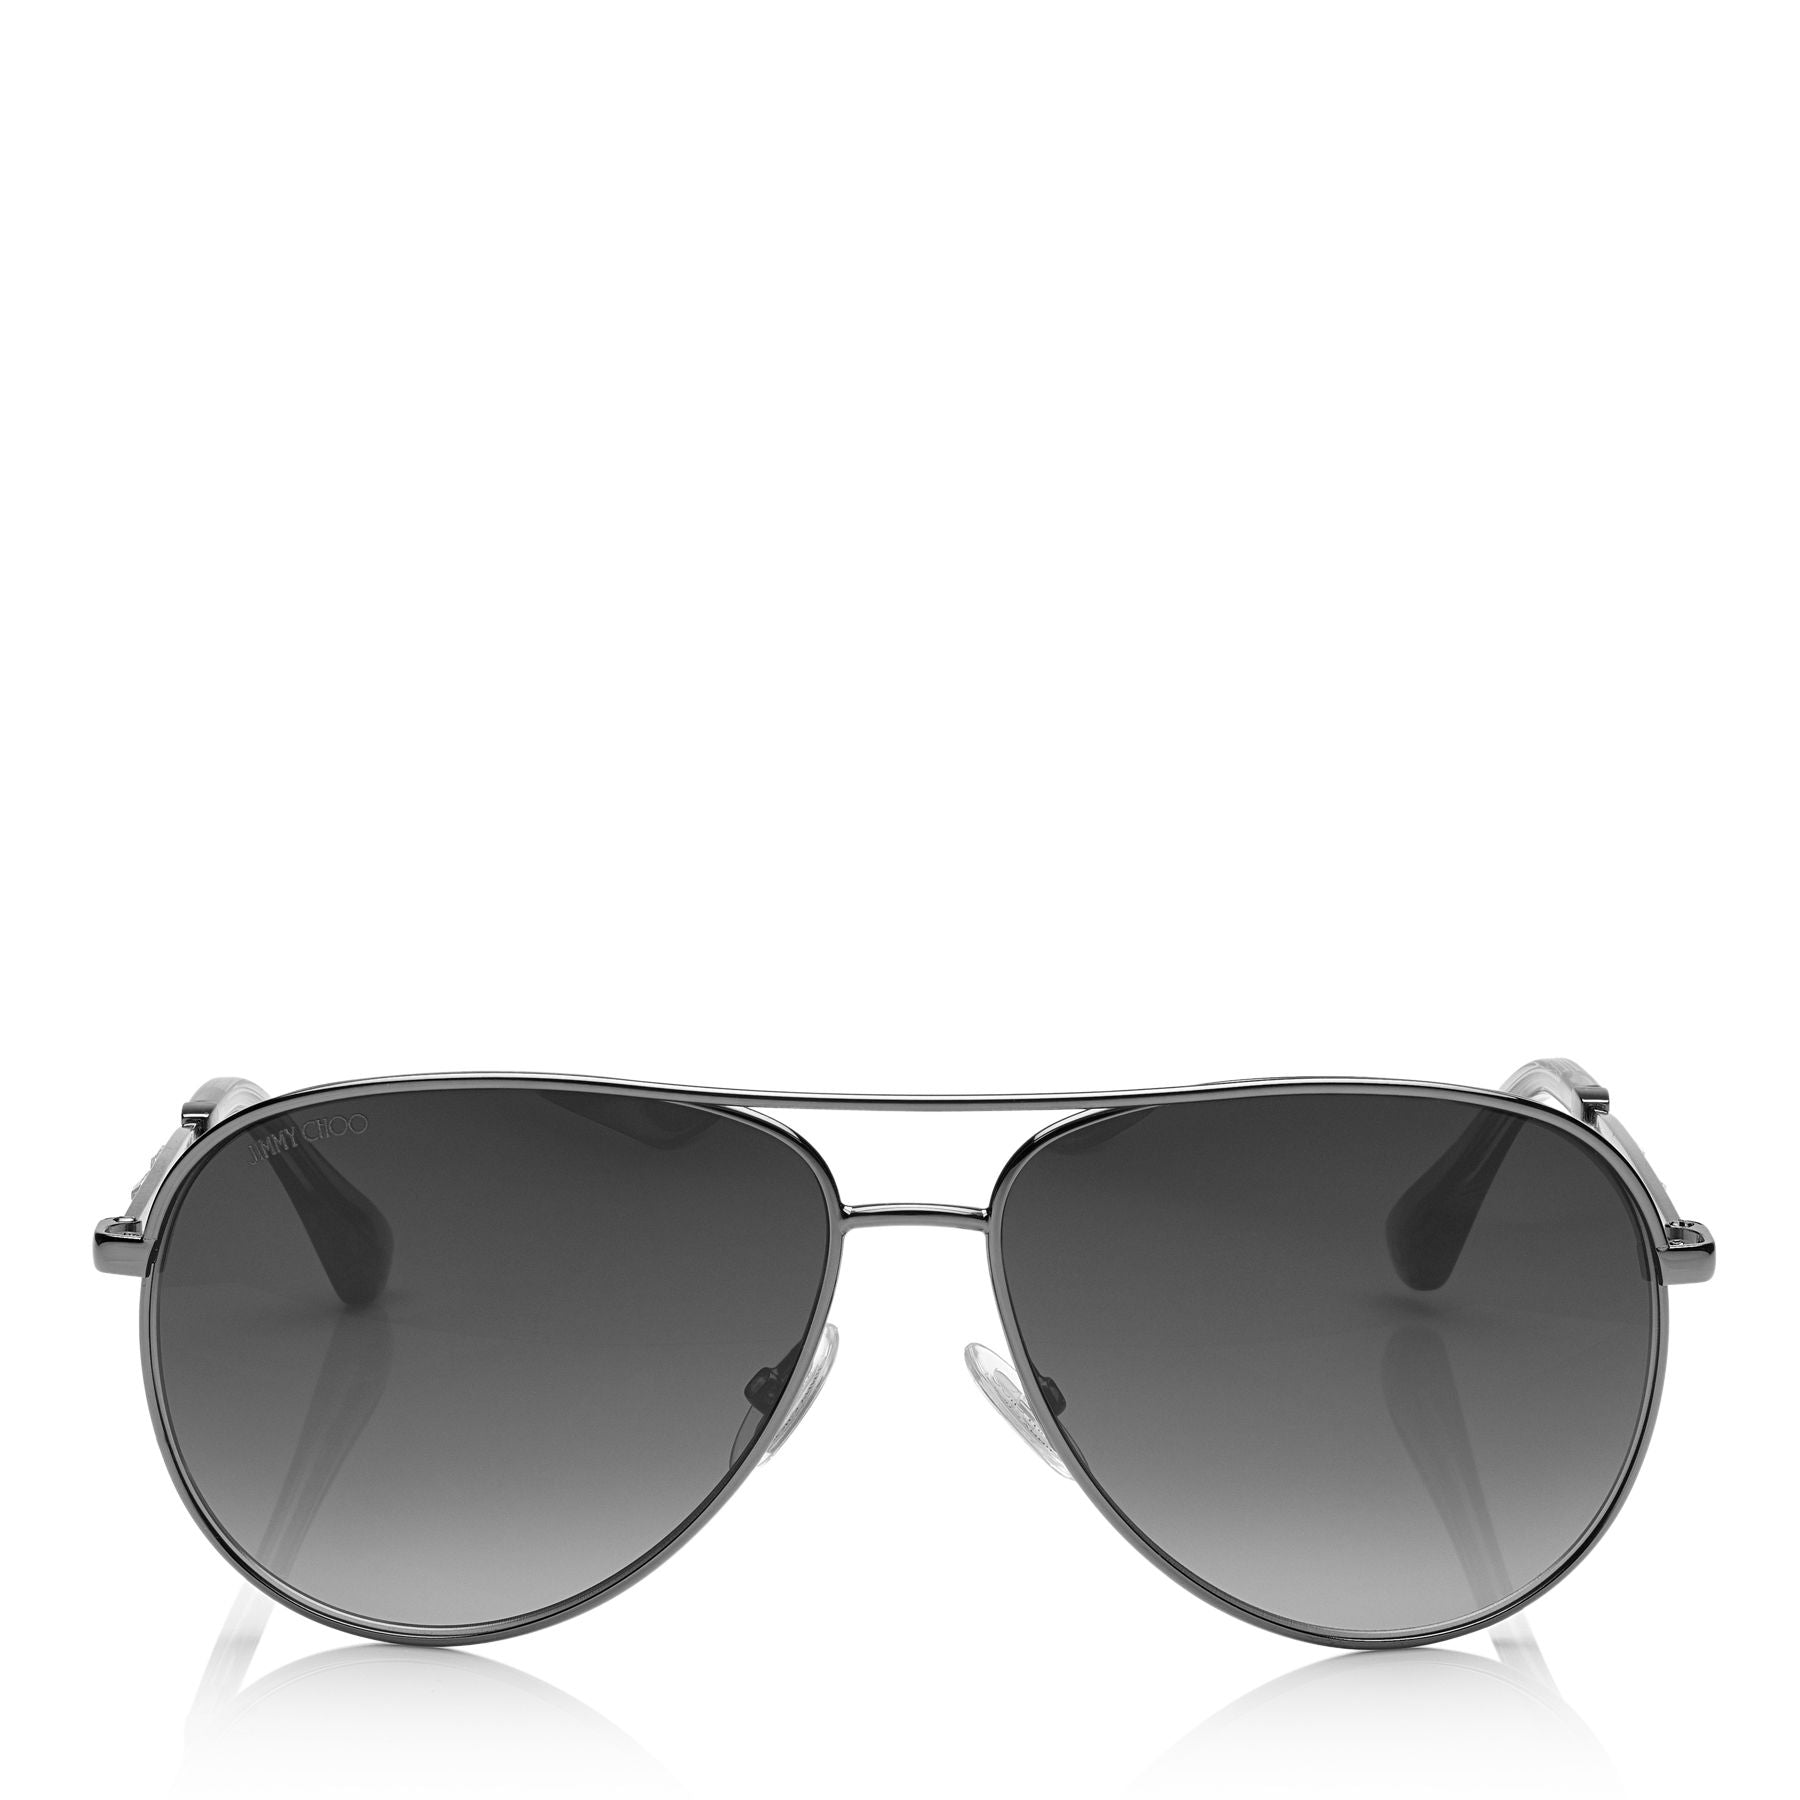 JIMMY CHOO Jewly Dark Ruthenium Aviator Sunglasses ITEM NO. JEWLYS58EKJ1